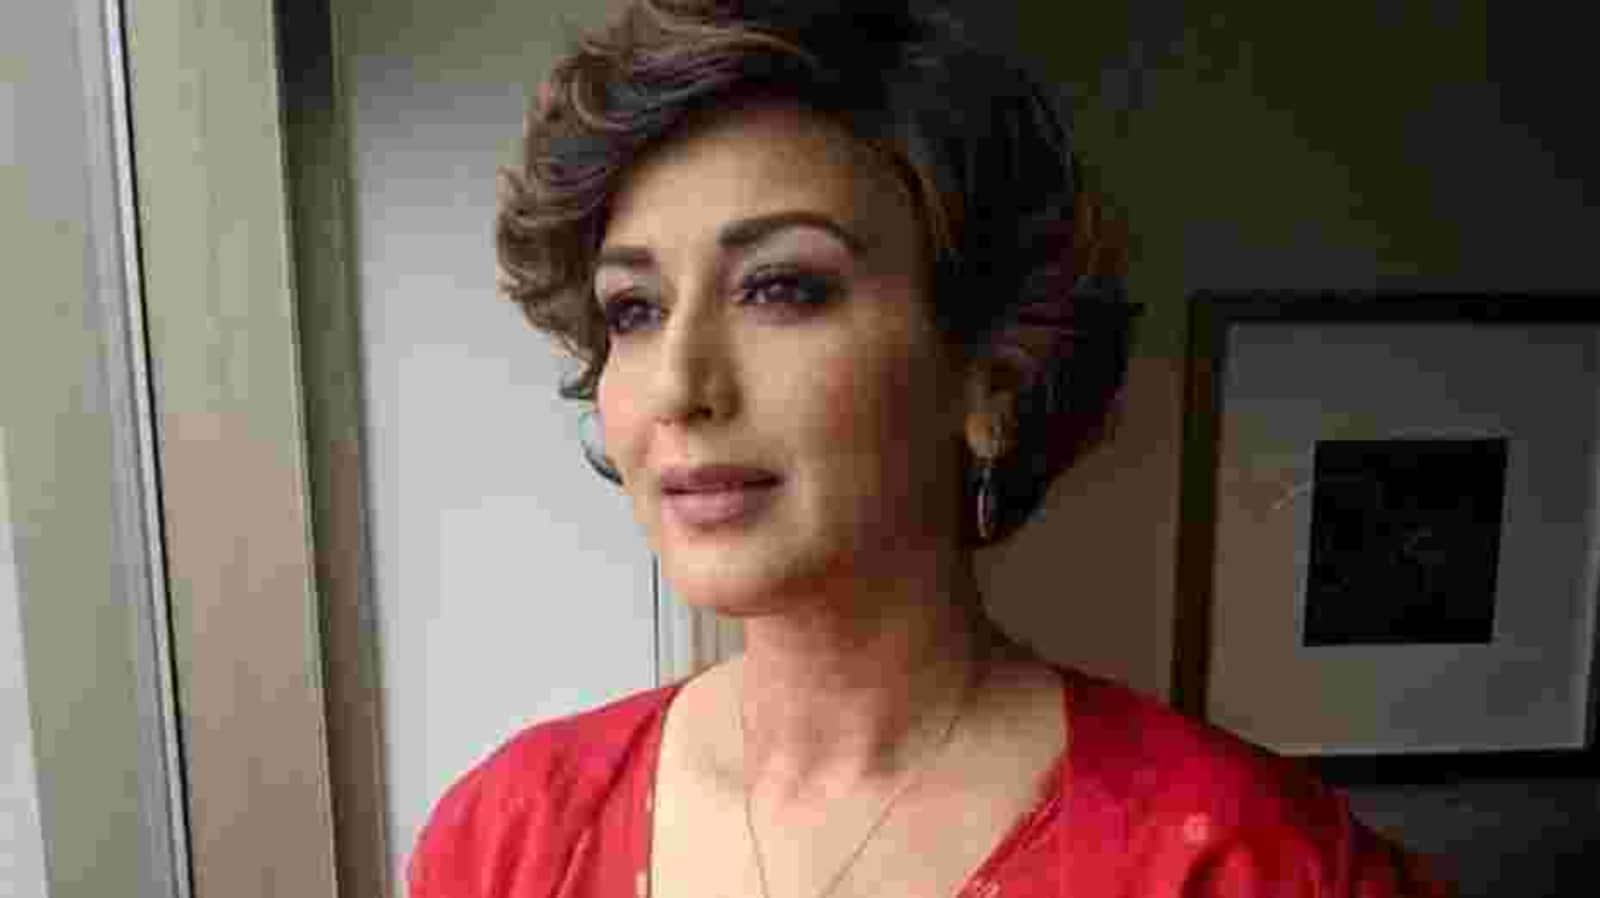 'Can we please make Mondays optional?': Sonali Bendre's meme on Instagram is too relatable - Hindustan Times